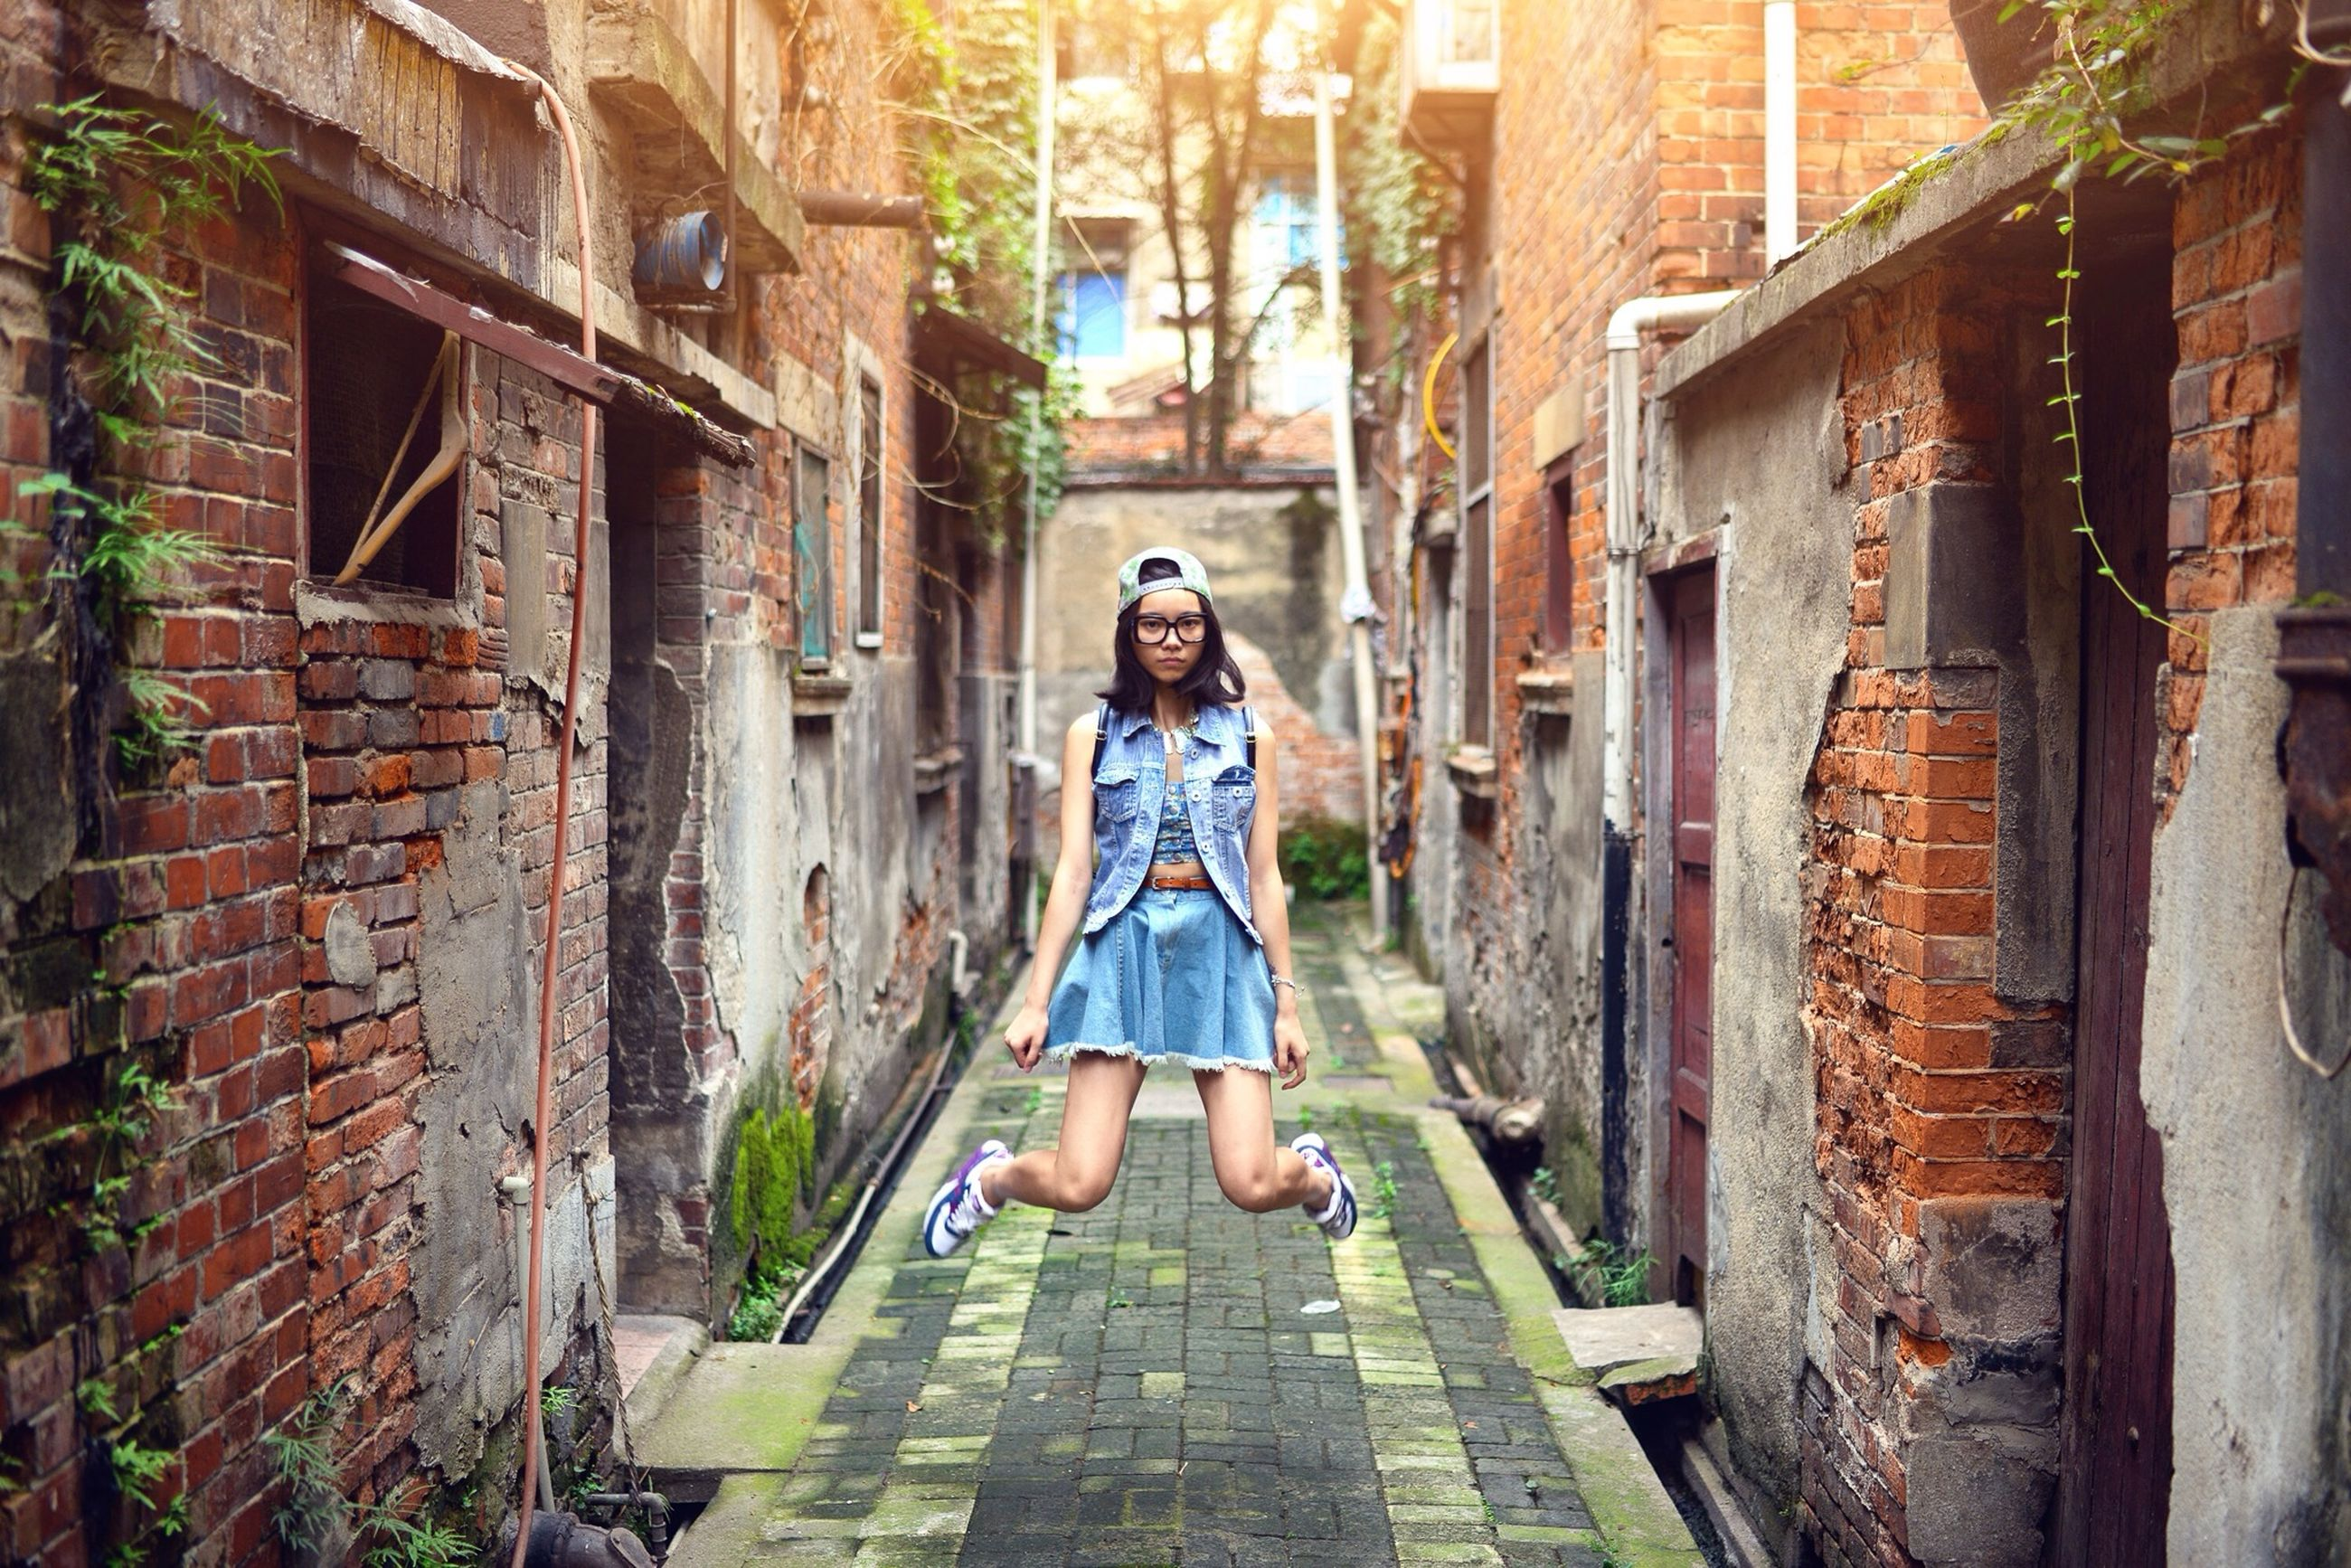 architecture, building exterior, built structure, casual clothing, full length, lifestyles, young adult, standing, person, building, wall - building feature, leisure activity, brick wall, stone wall, old, residential structure, house, young women